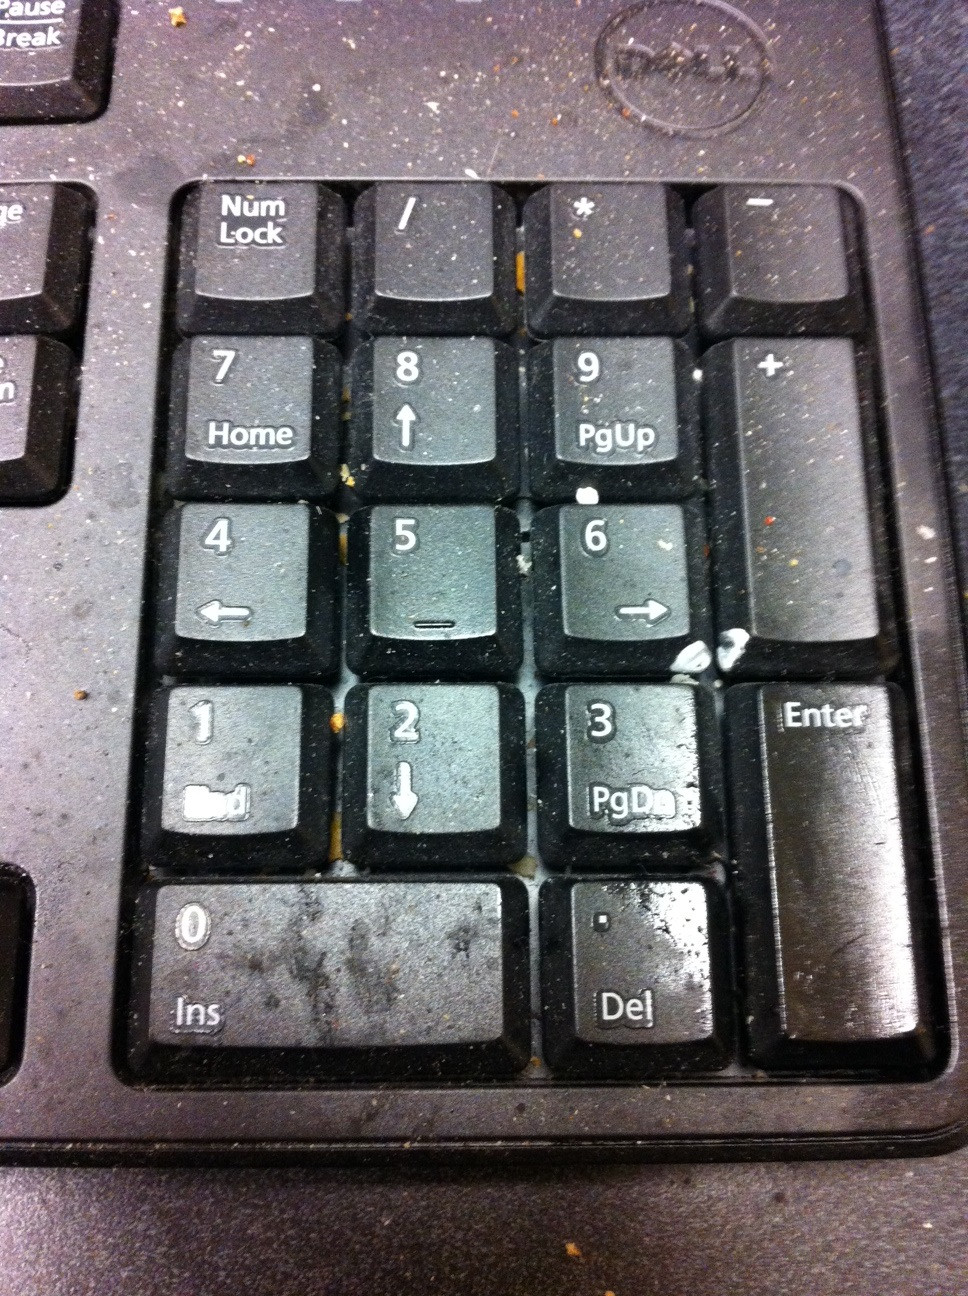 k@Doctor's keyboard, he touches patients with these hands